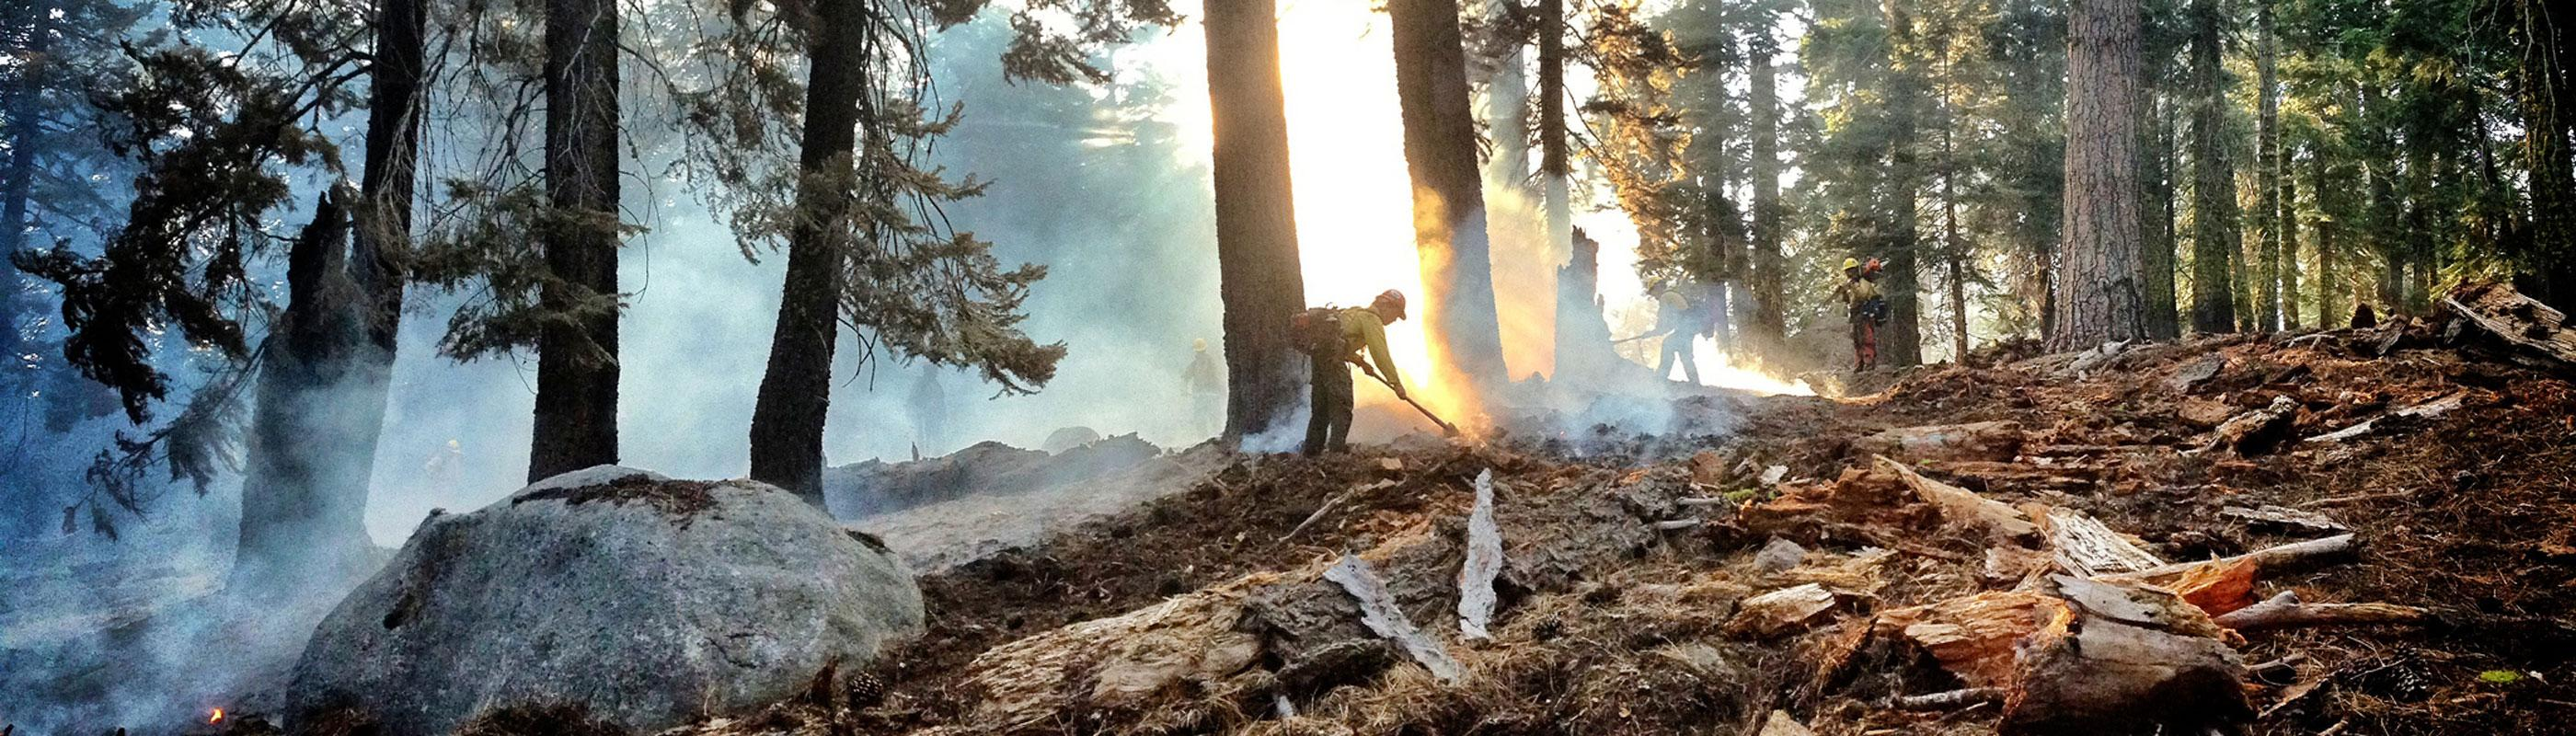 Firefighter working in forest